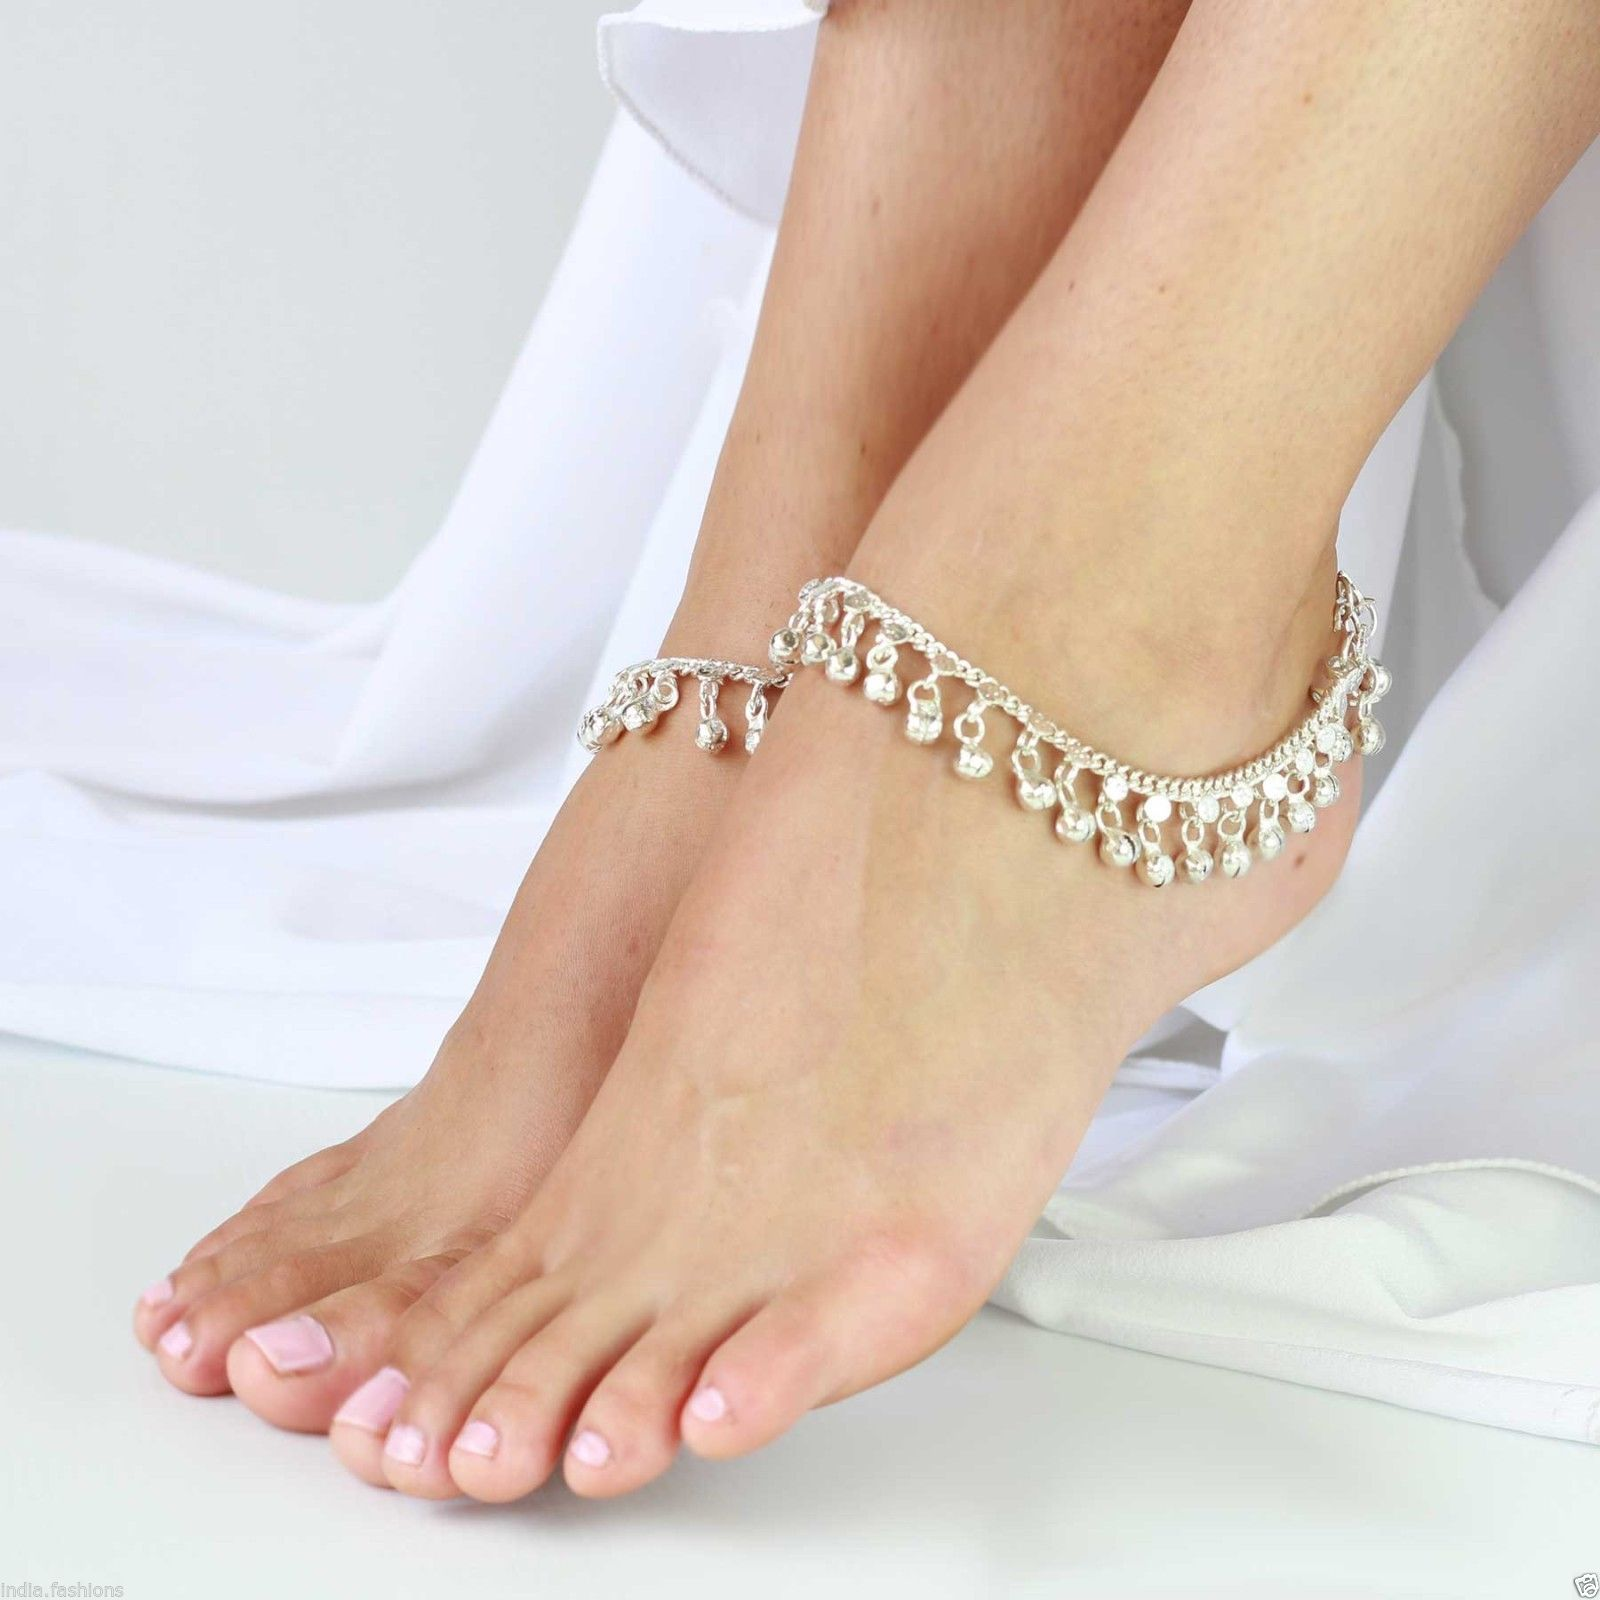 anklet lyso bangles ankle foot womens jewelry on store expandable with pendant gold vintage chain bracelet platinum s product anklets wihte leg online bracelets bridal piece beads cube plated gift